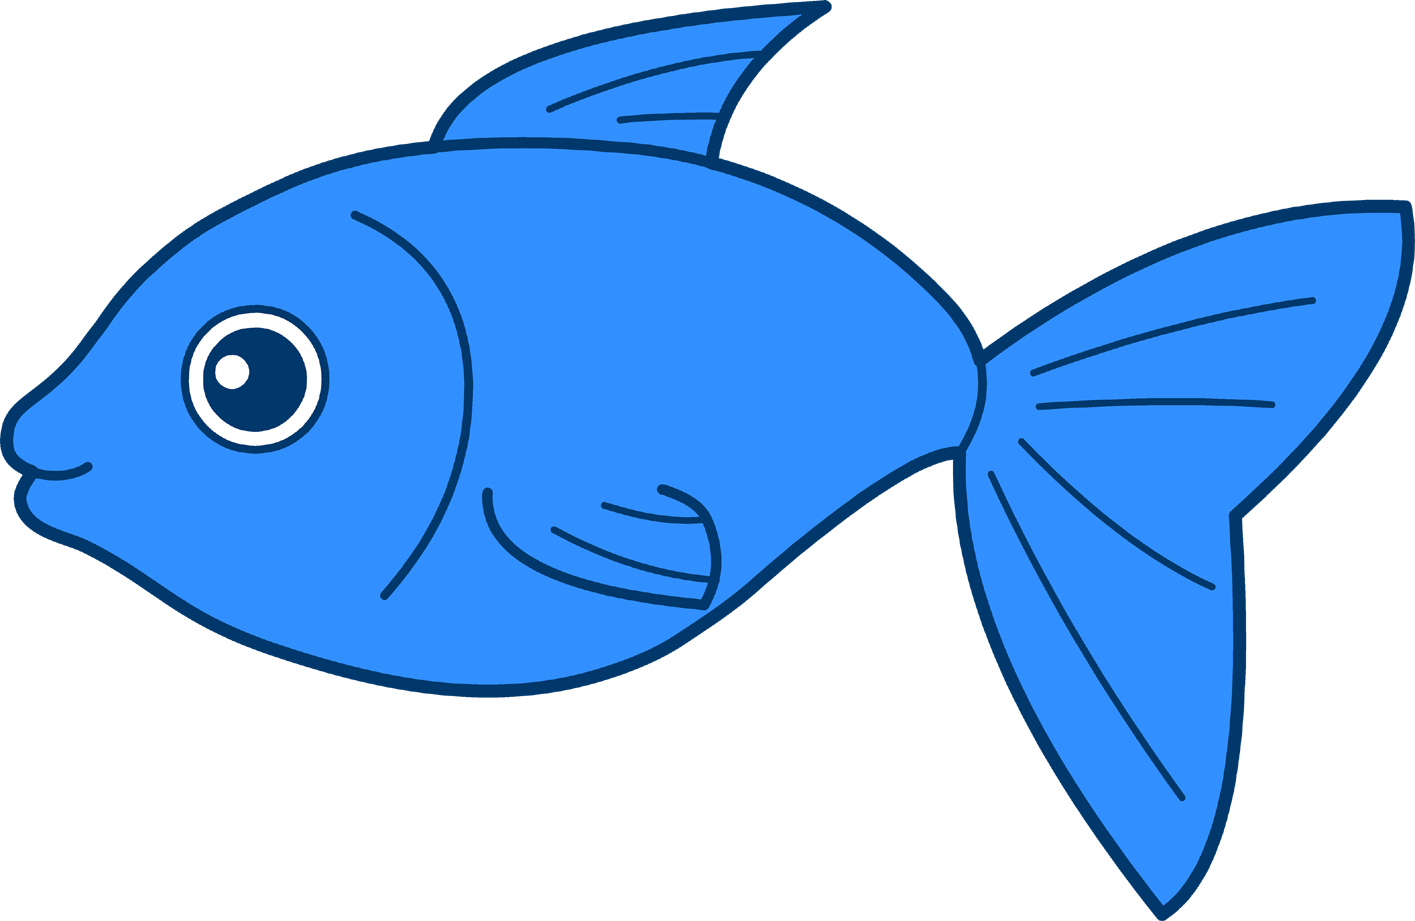 For kids at getdrawings. Fish bowl with fish clipart